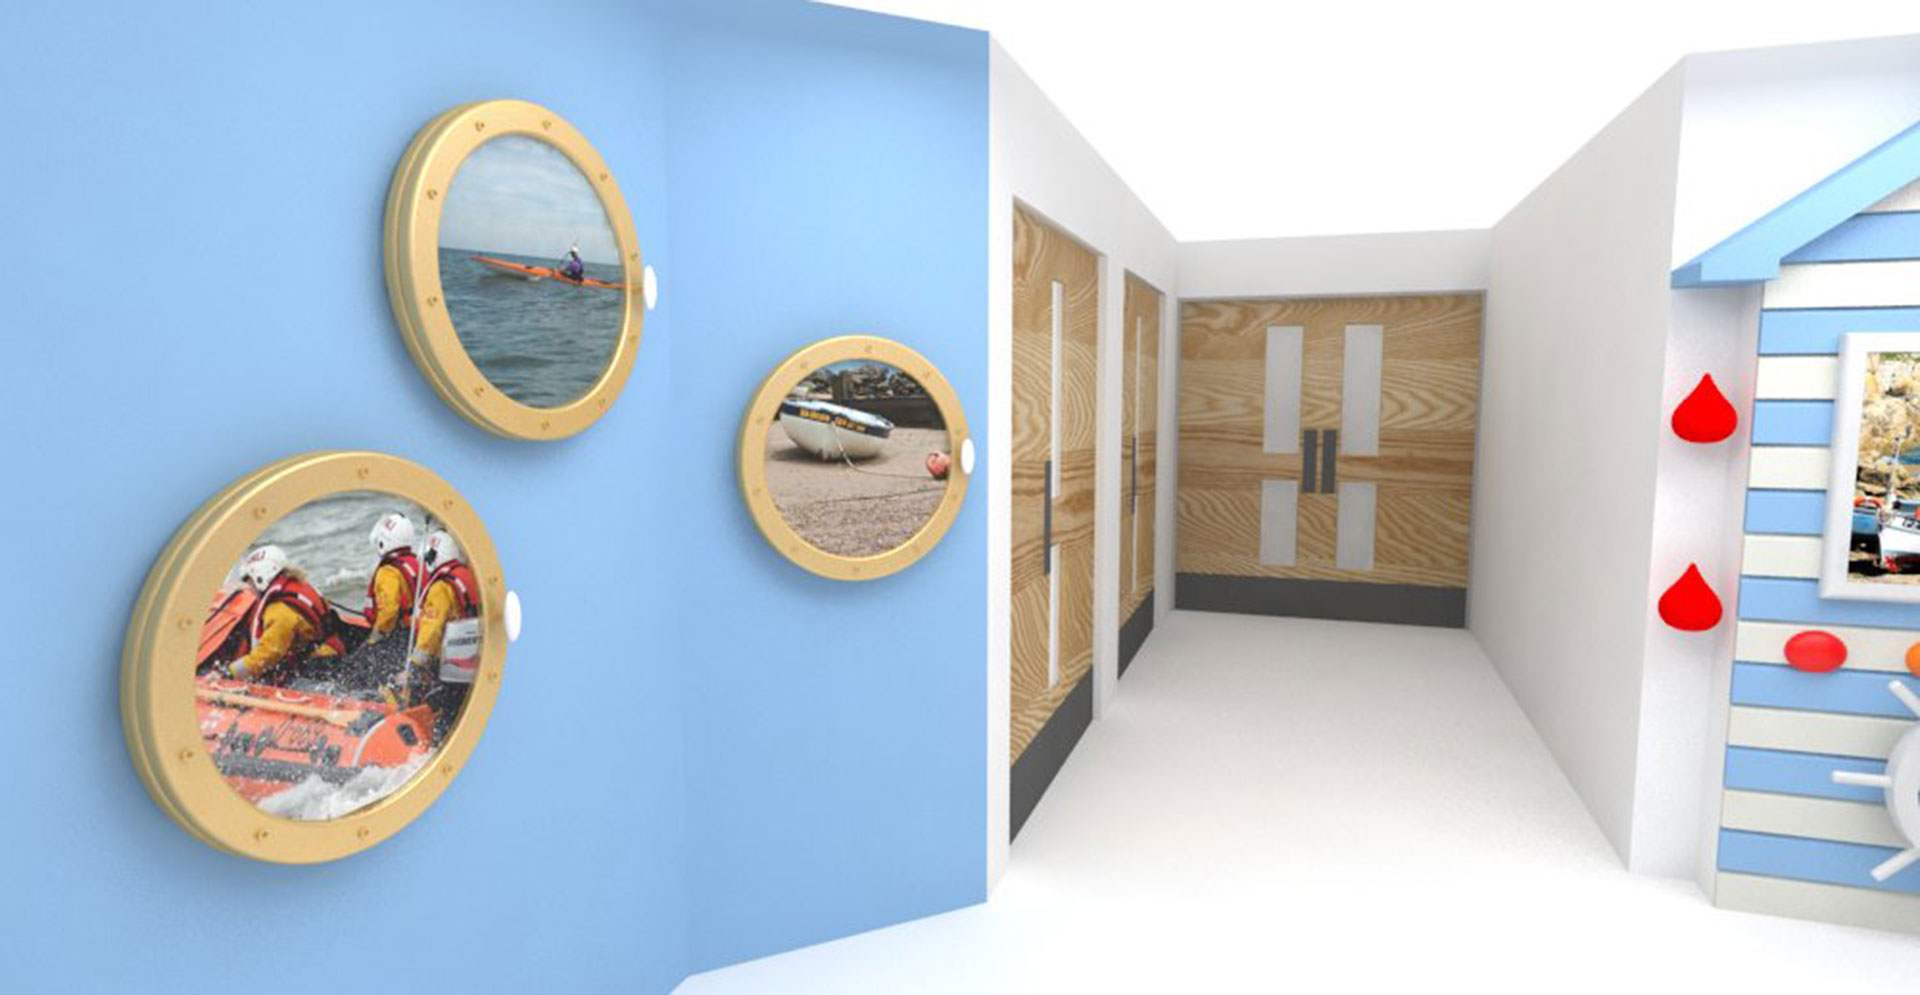 Porthole Visual stimuli where there are no windows for Dementia patients